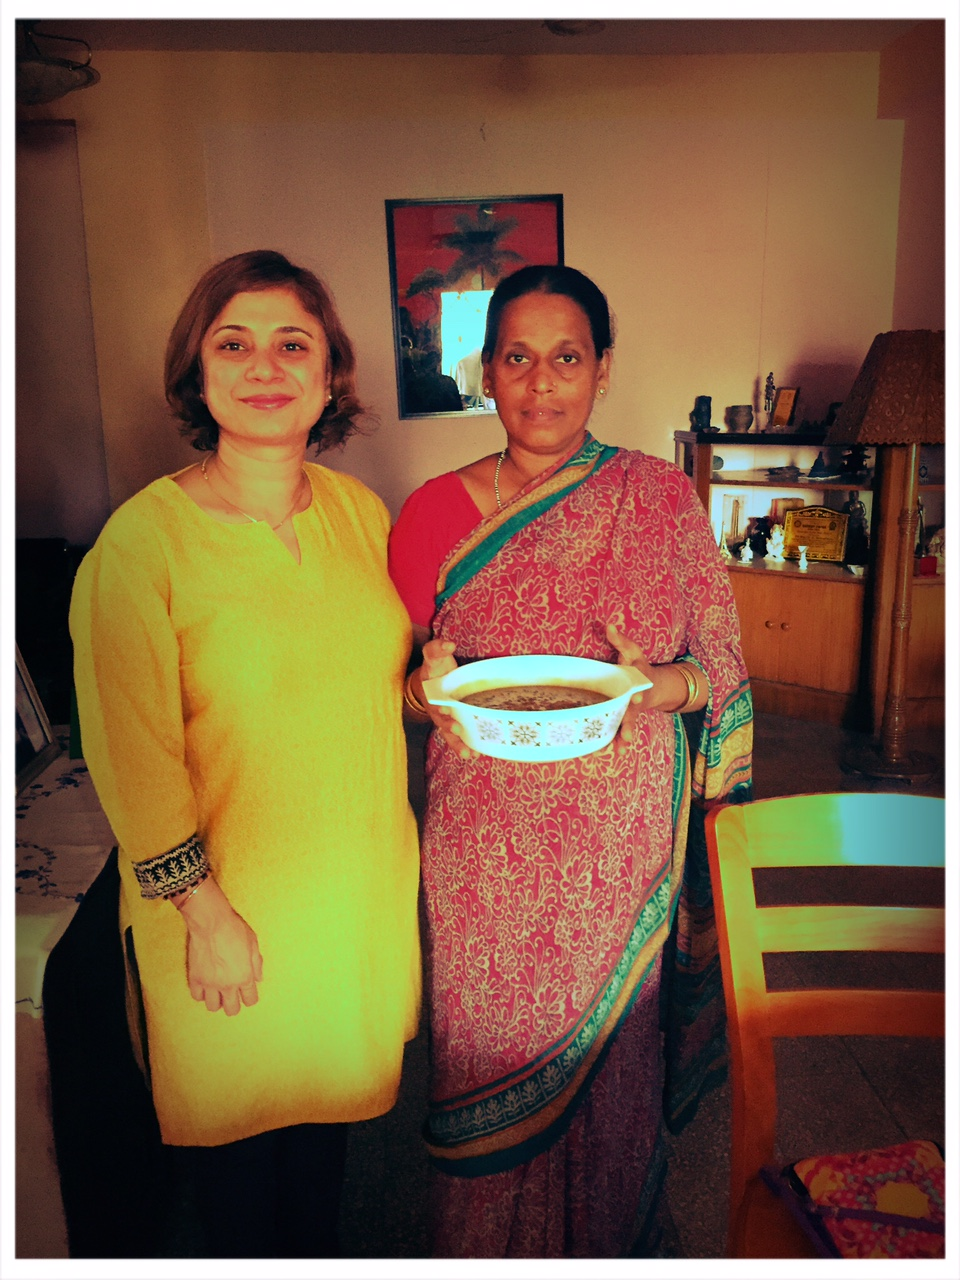 Ayurvedic cooking workshop for underprivileged women